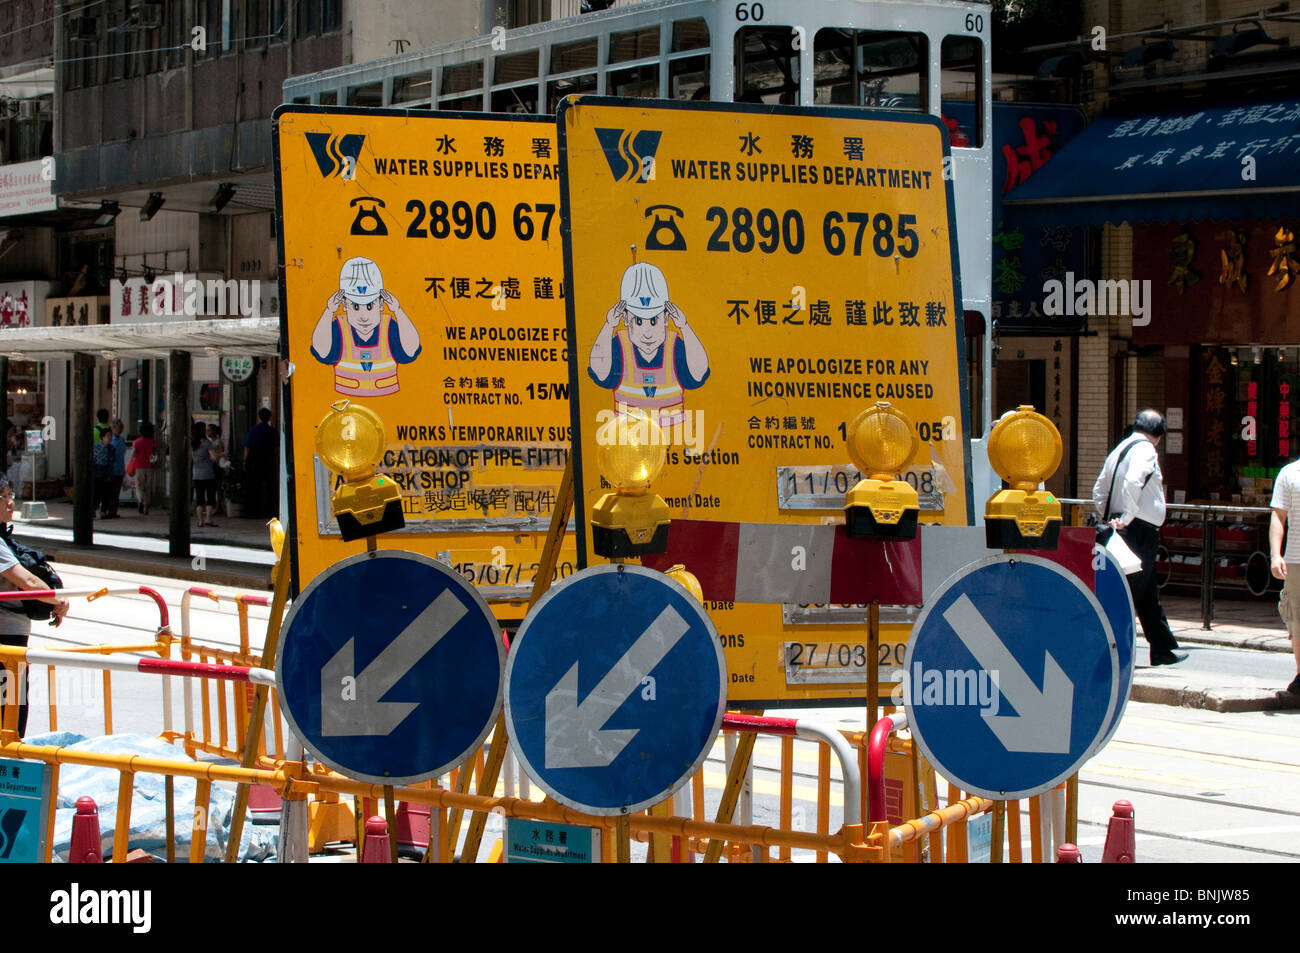 Hong Kong, Public works from the water supplies department from the Government. - Stock Image